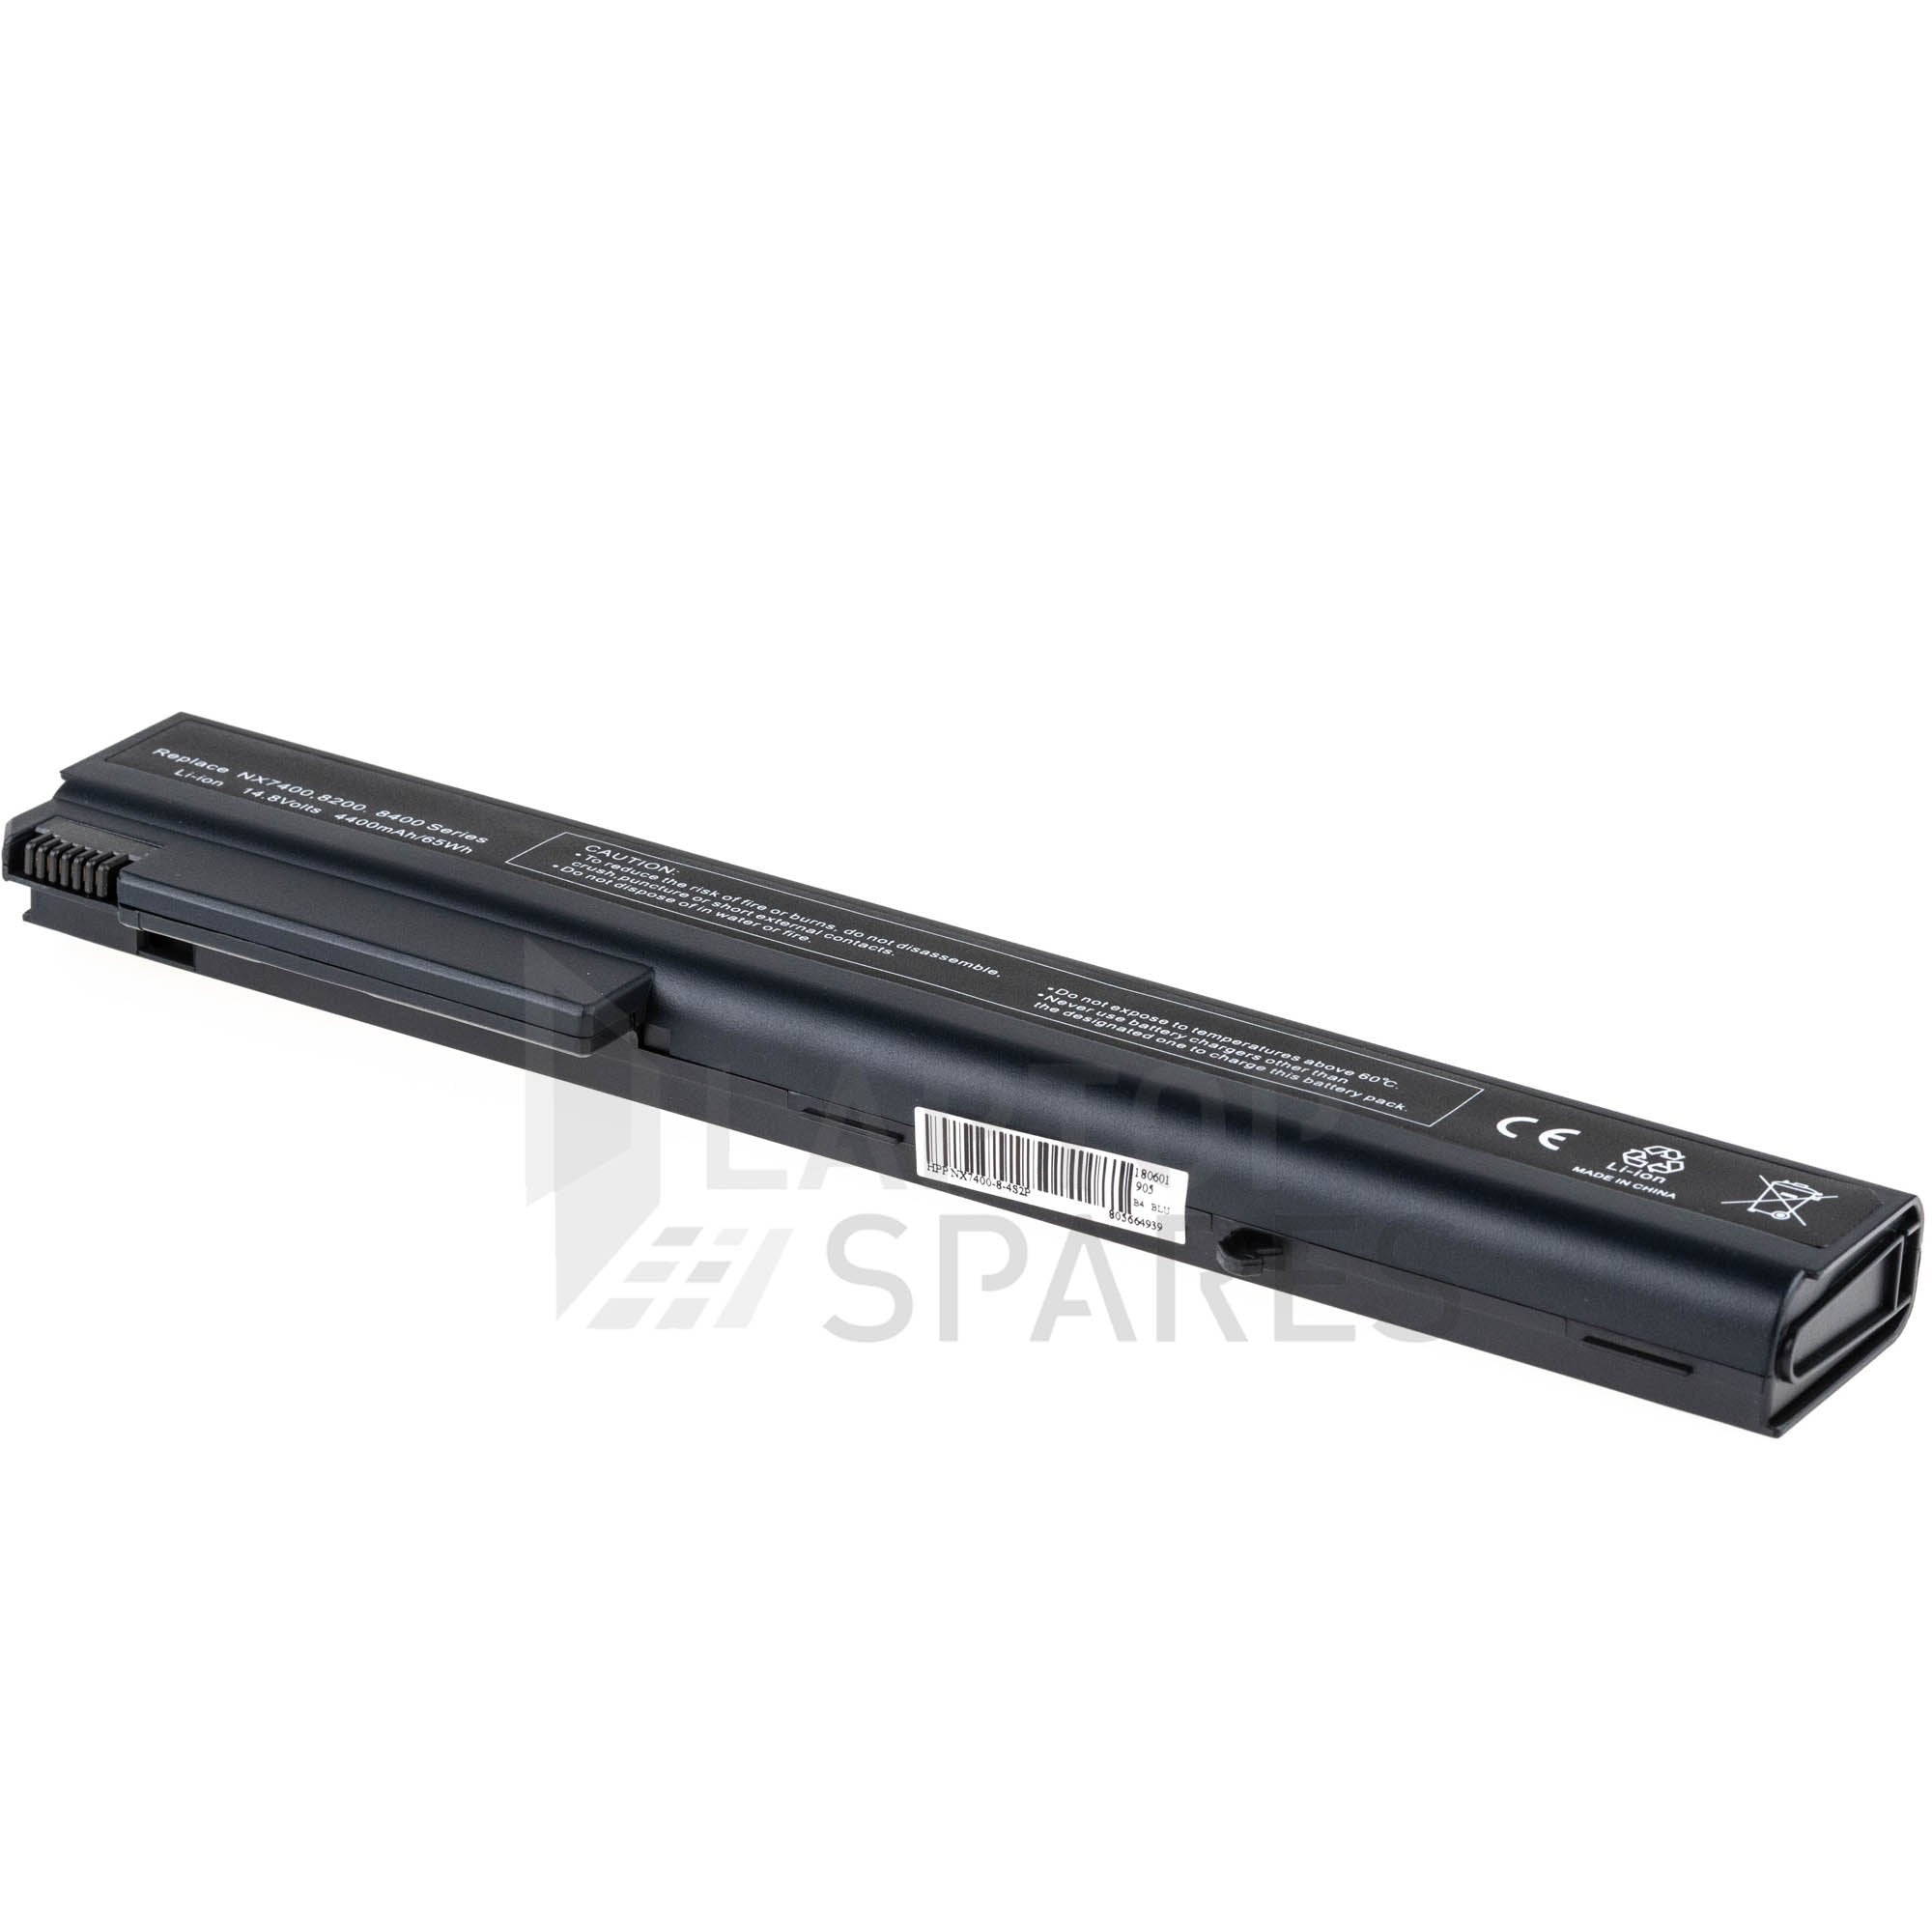 HP Business Notebook 8710W MOBILE WORKSTATION 4400mAh 6 Cell Battery